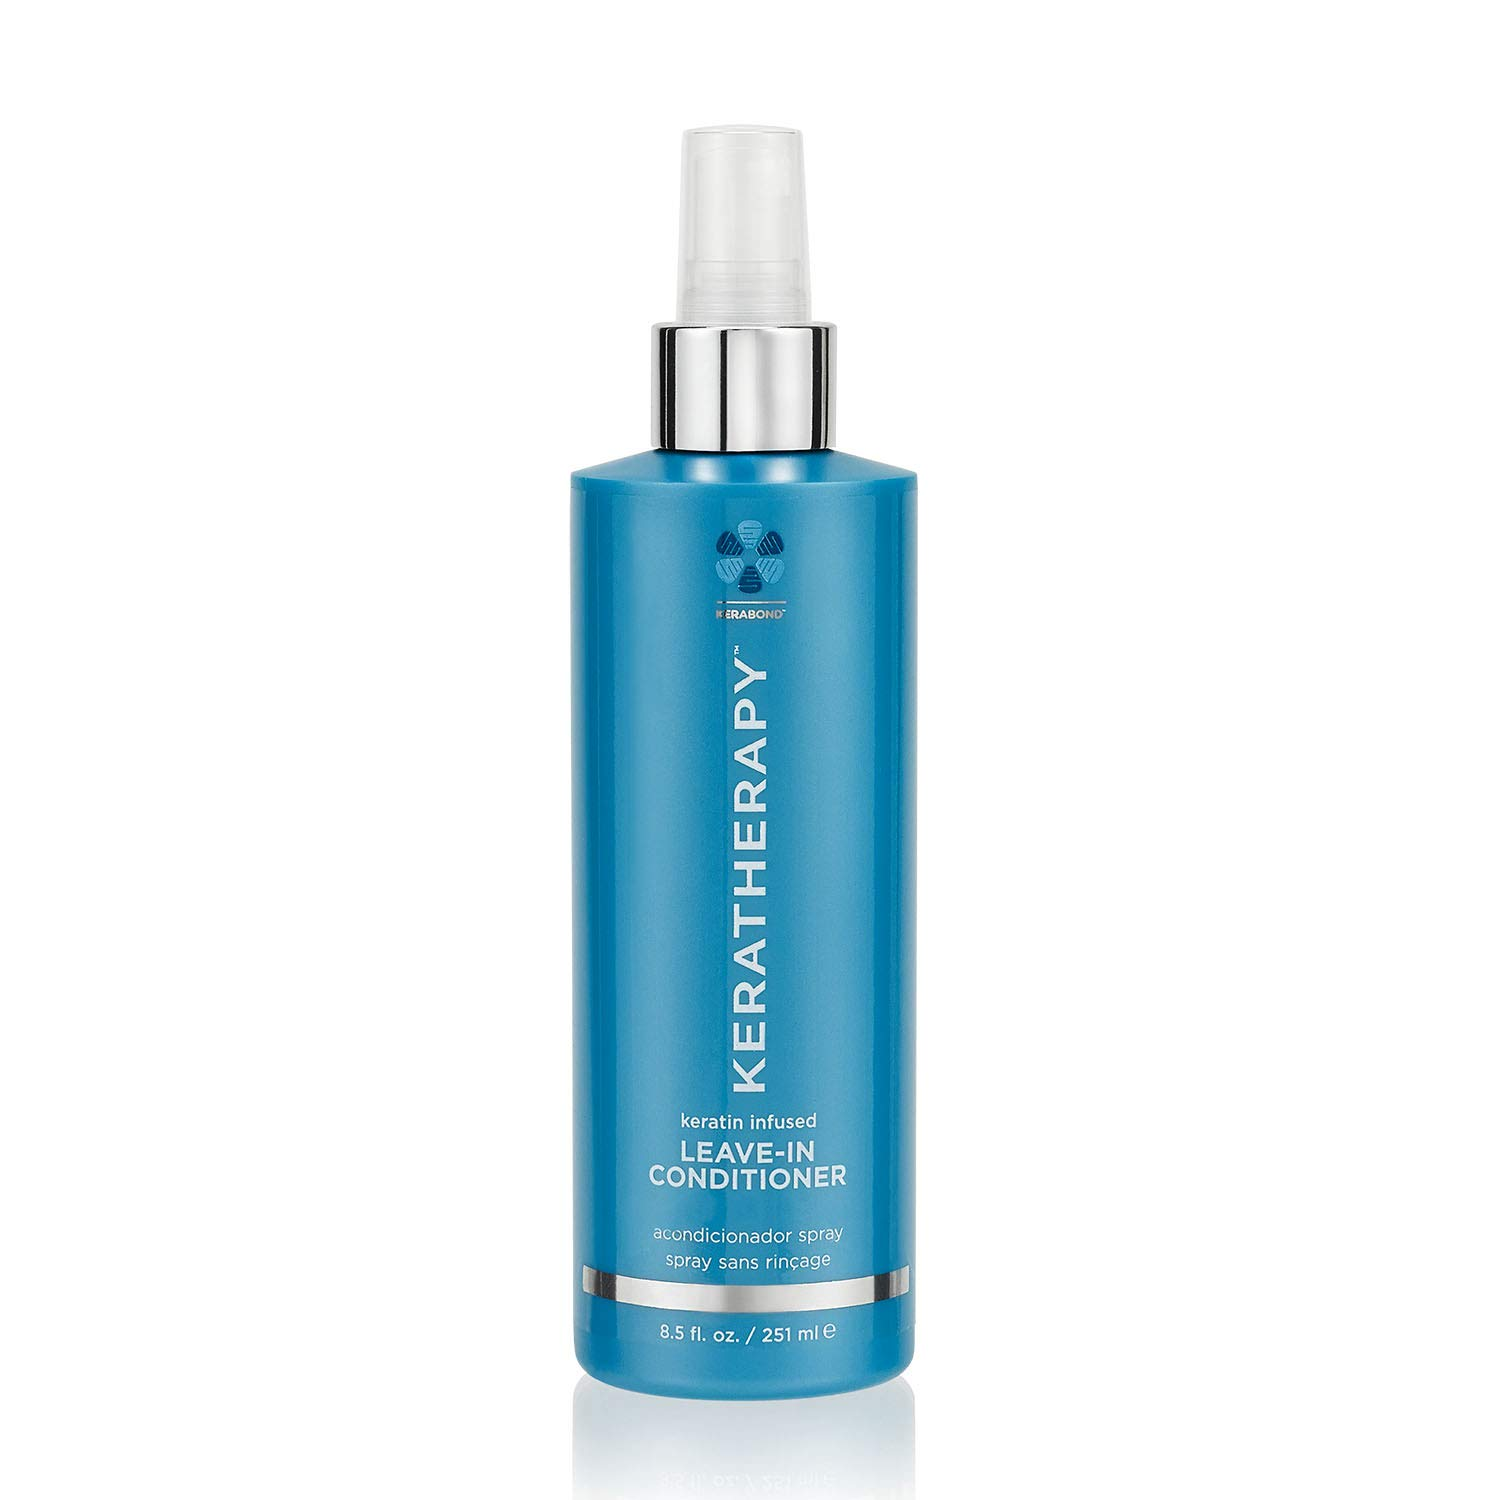 KERATHERAPY Keratin Infused Moisture Leave In Conditioner Spray, 8.5 Fl Oz